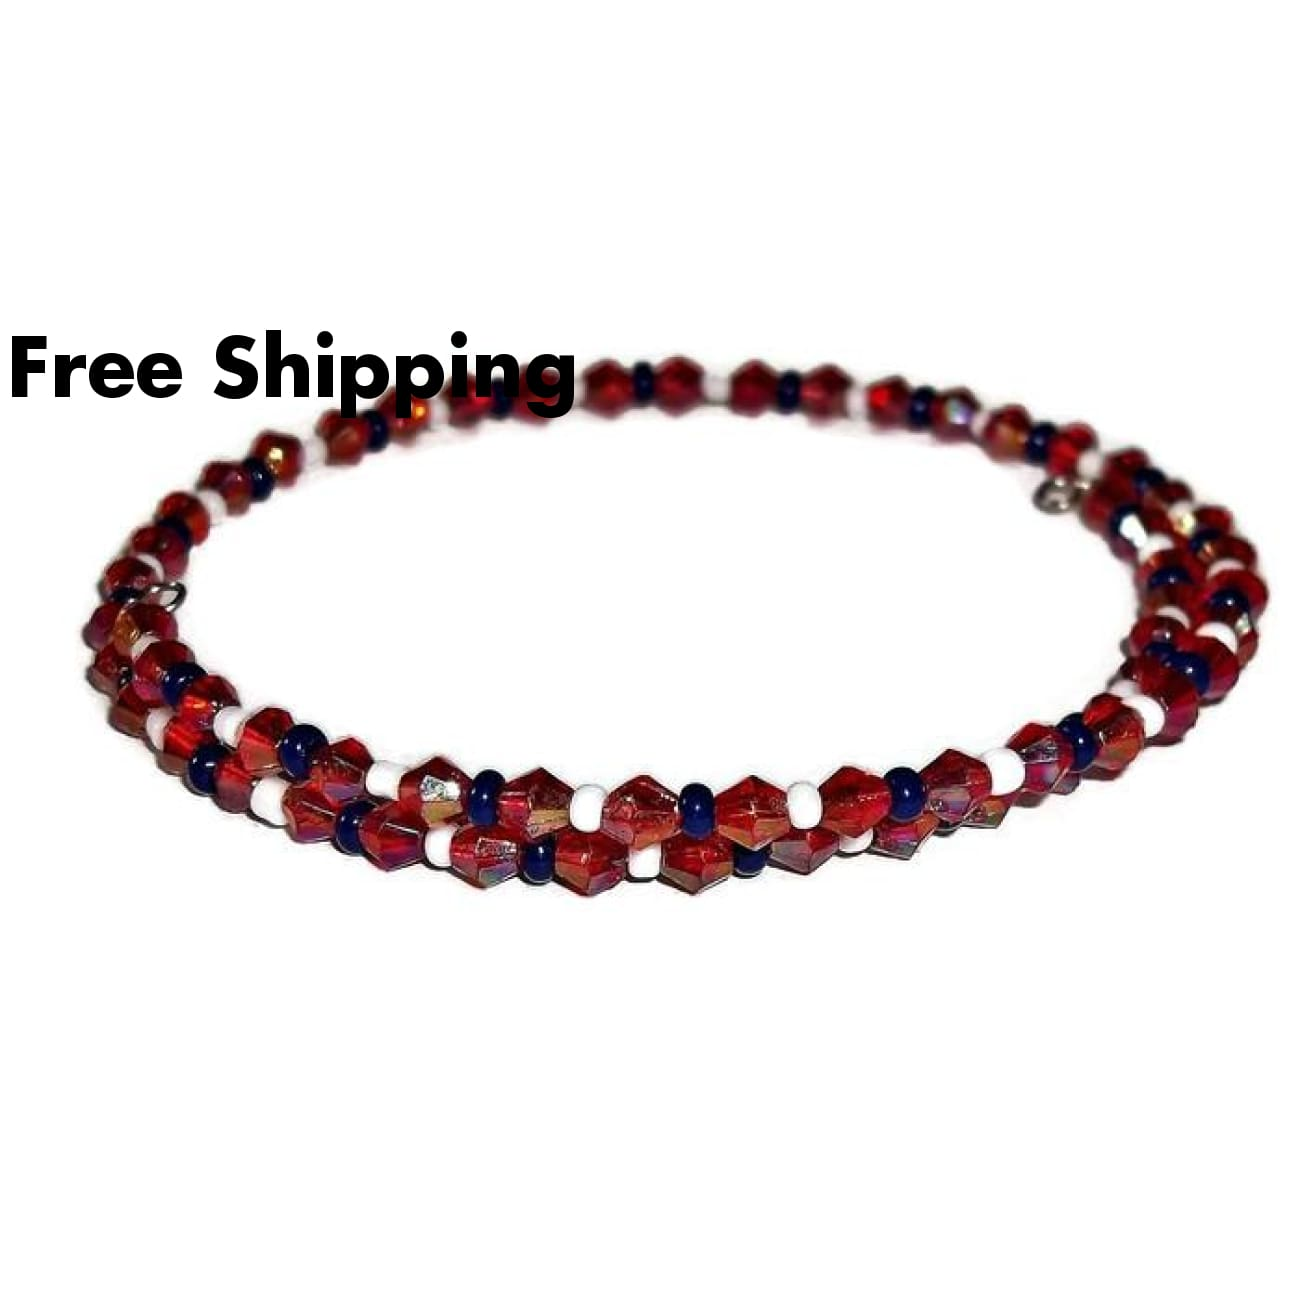 Plus Size Elegance Dark Red Crystal Navy Blue And White Glass Beaded Stackables Wrap Bracelet (L-Xxl) - New Arrival